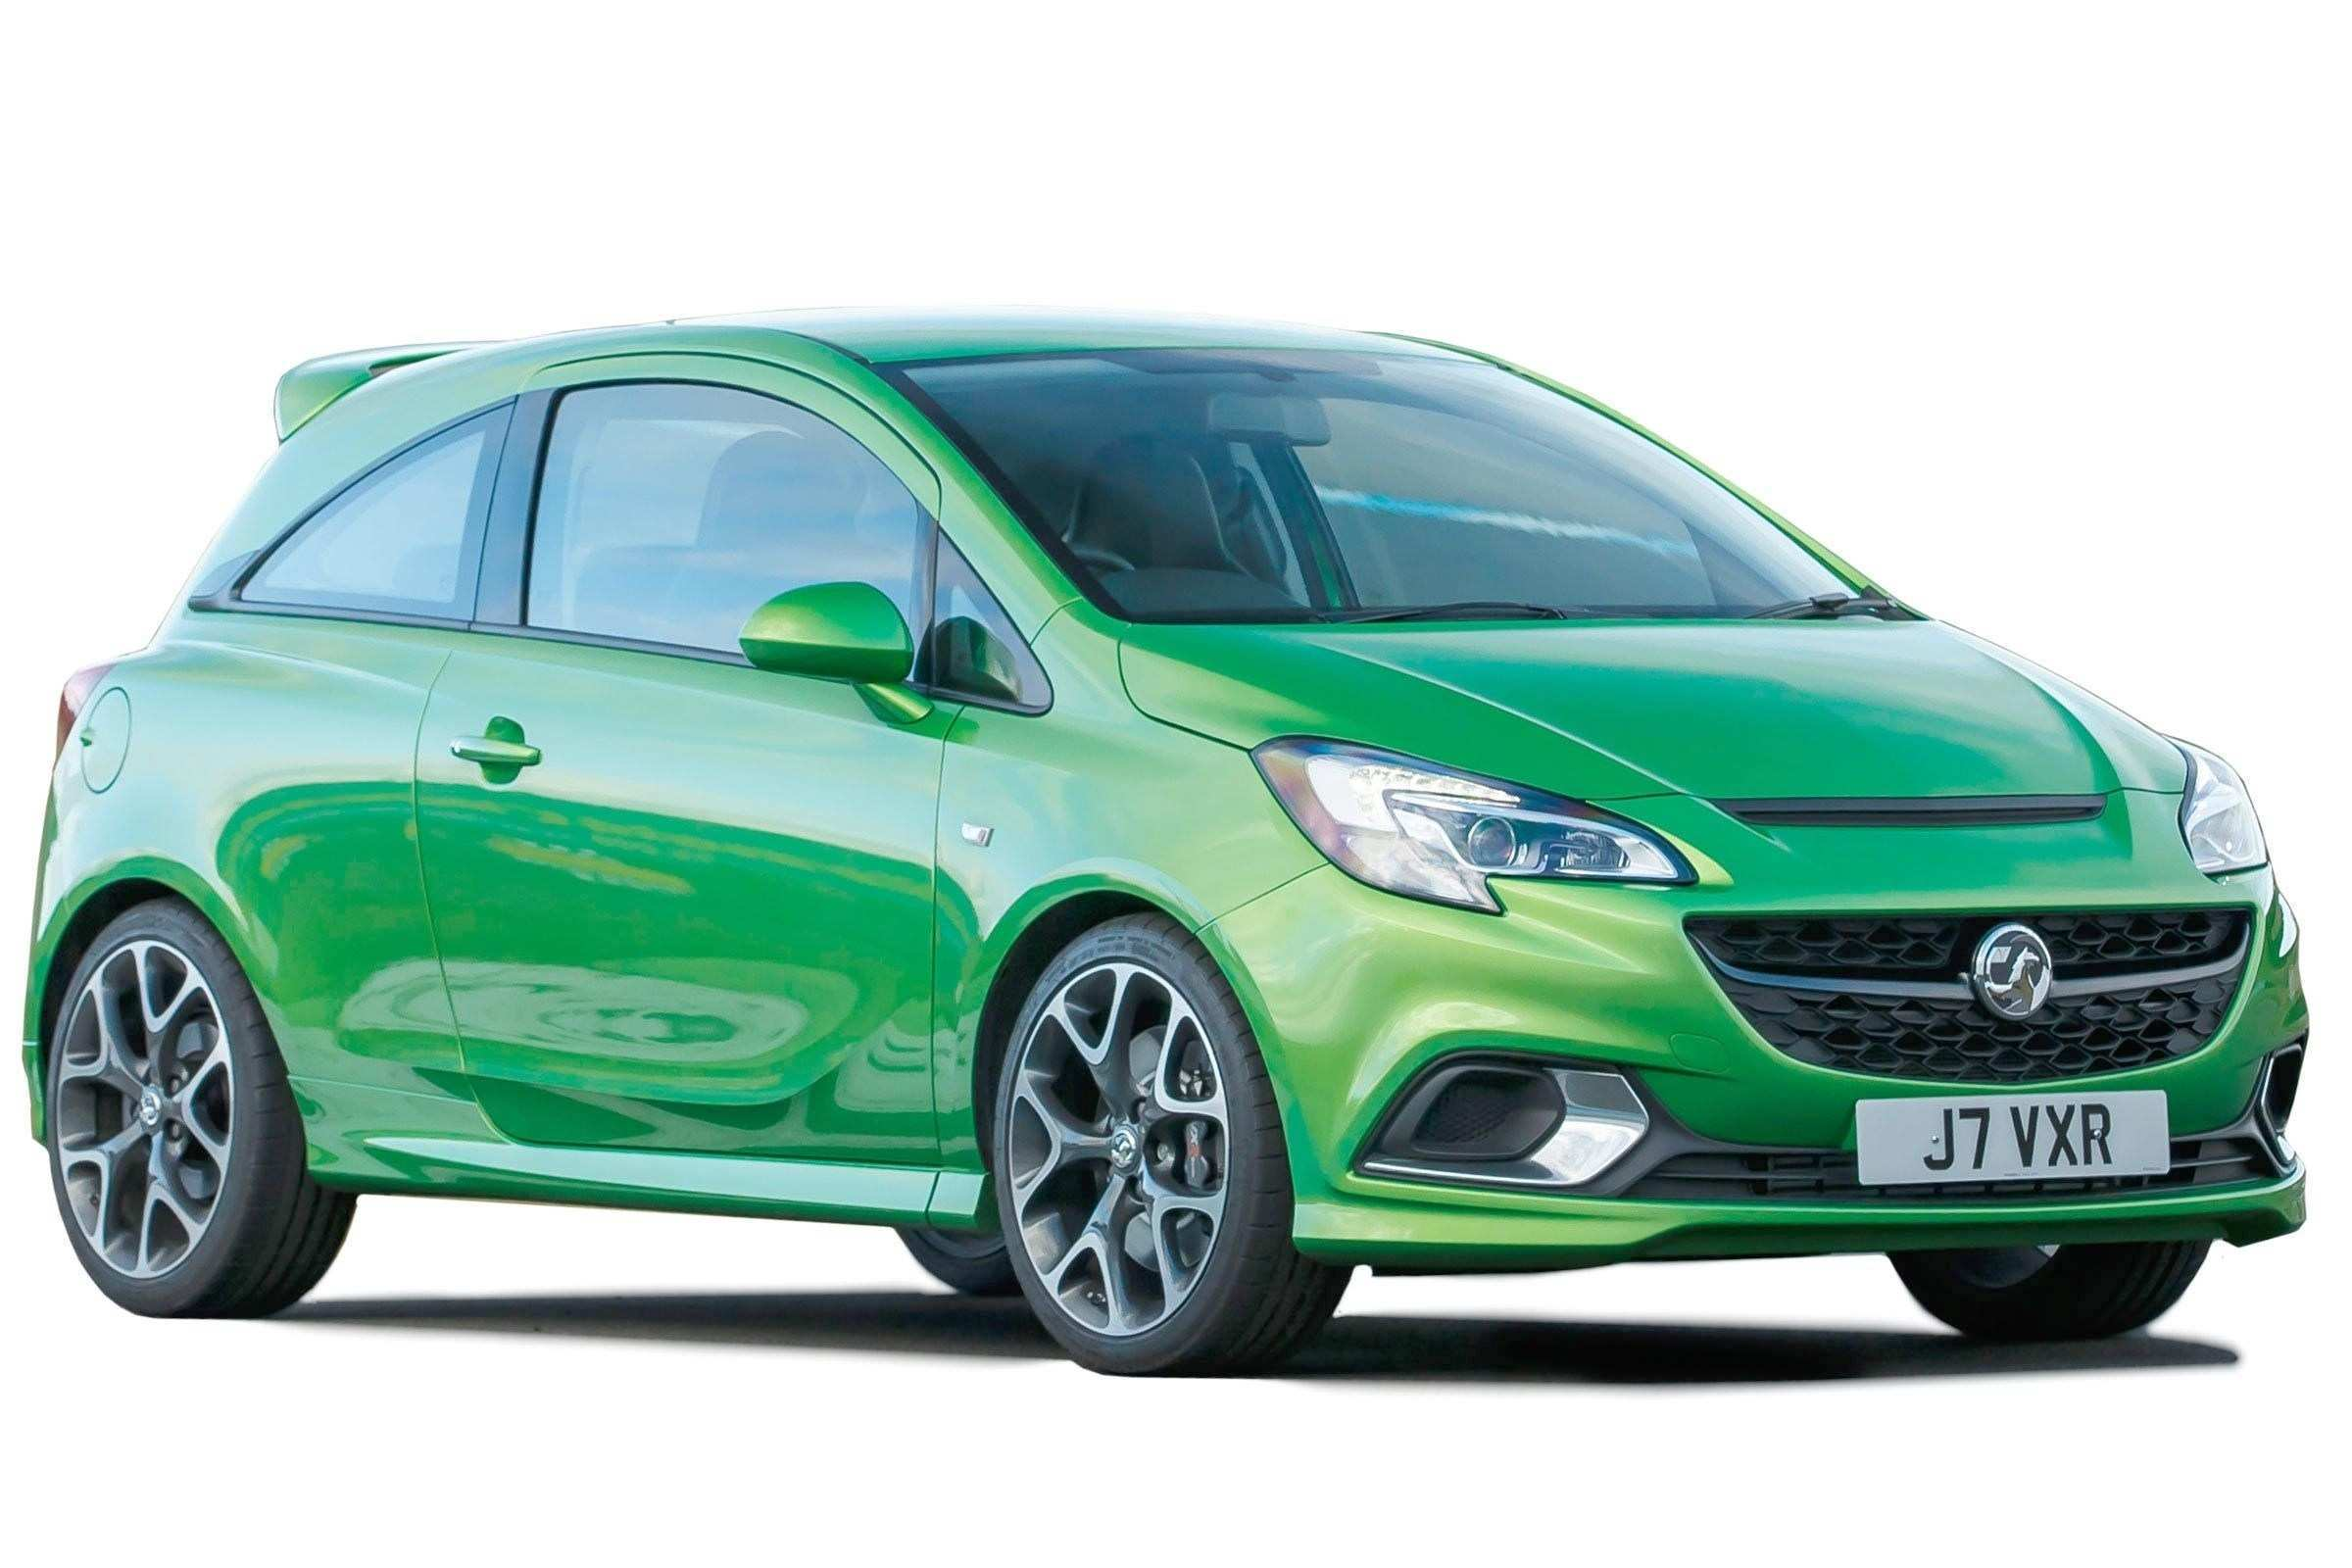 29 All New 2020 VauxhCorsa VXR Exterior And Interior